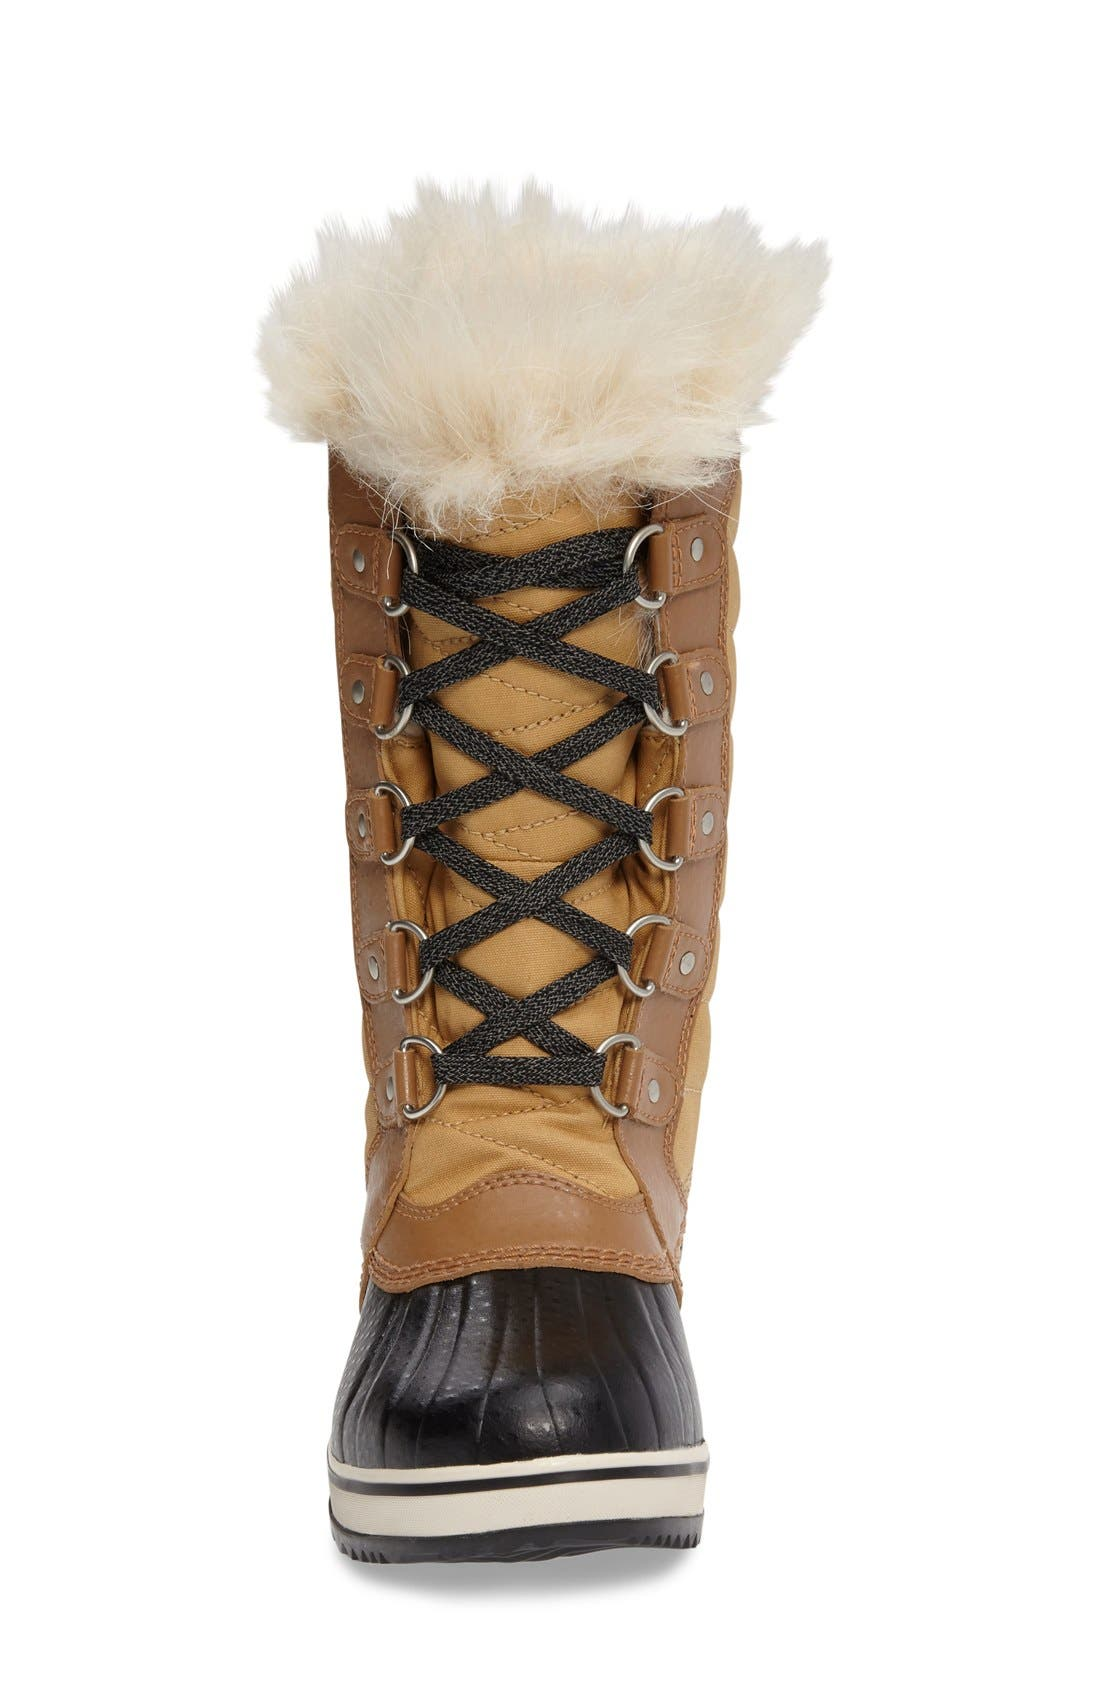 Tofino II Faux Fur Lined Waterproof Boot,                             Alternate thumbnail 4, color,                             CURRY/ ELK